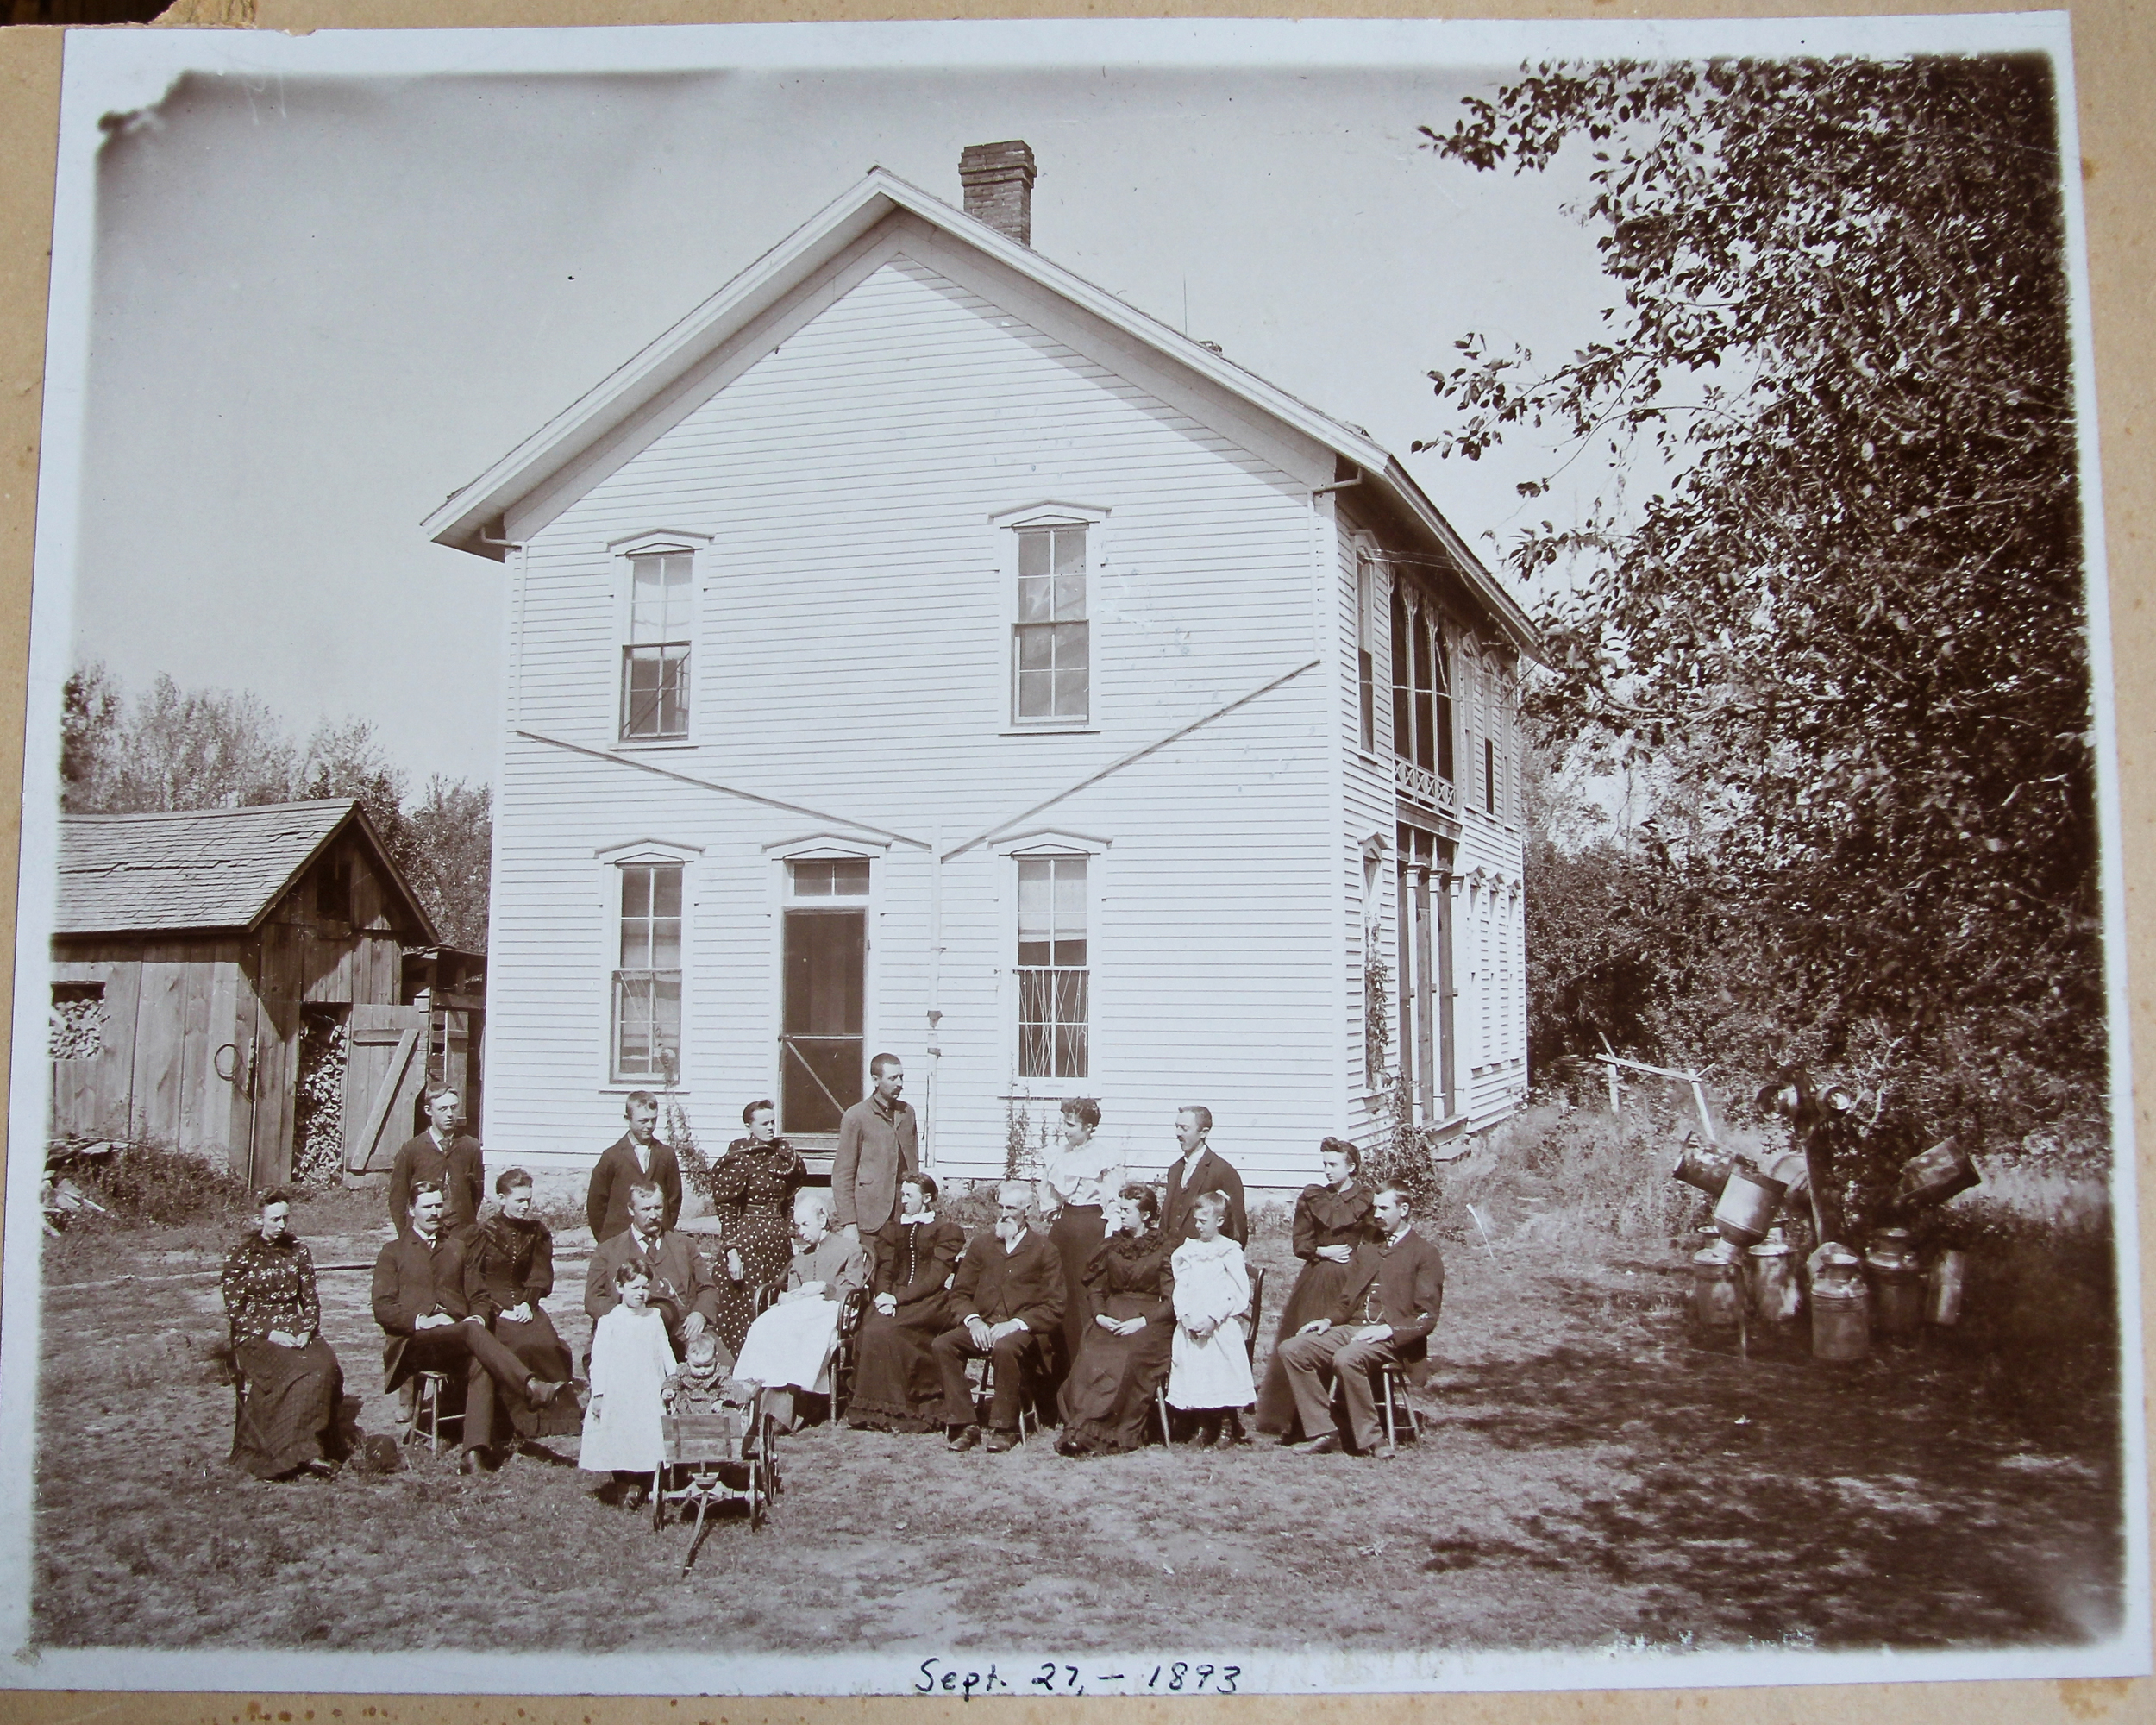 The farm in 1893. Jane Rundles (1st generation) is sitting front and center, James & Ella Rundles (2nd generation) standing behind Jane. Other family members surround them. In 1949 this house was replaced by the brick house currently standing, by William and Mary Grupp (3rd generation).